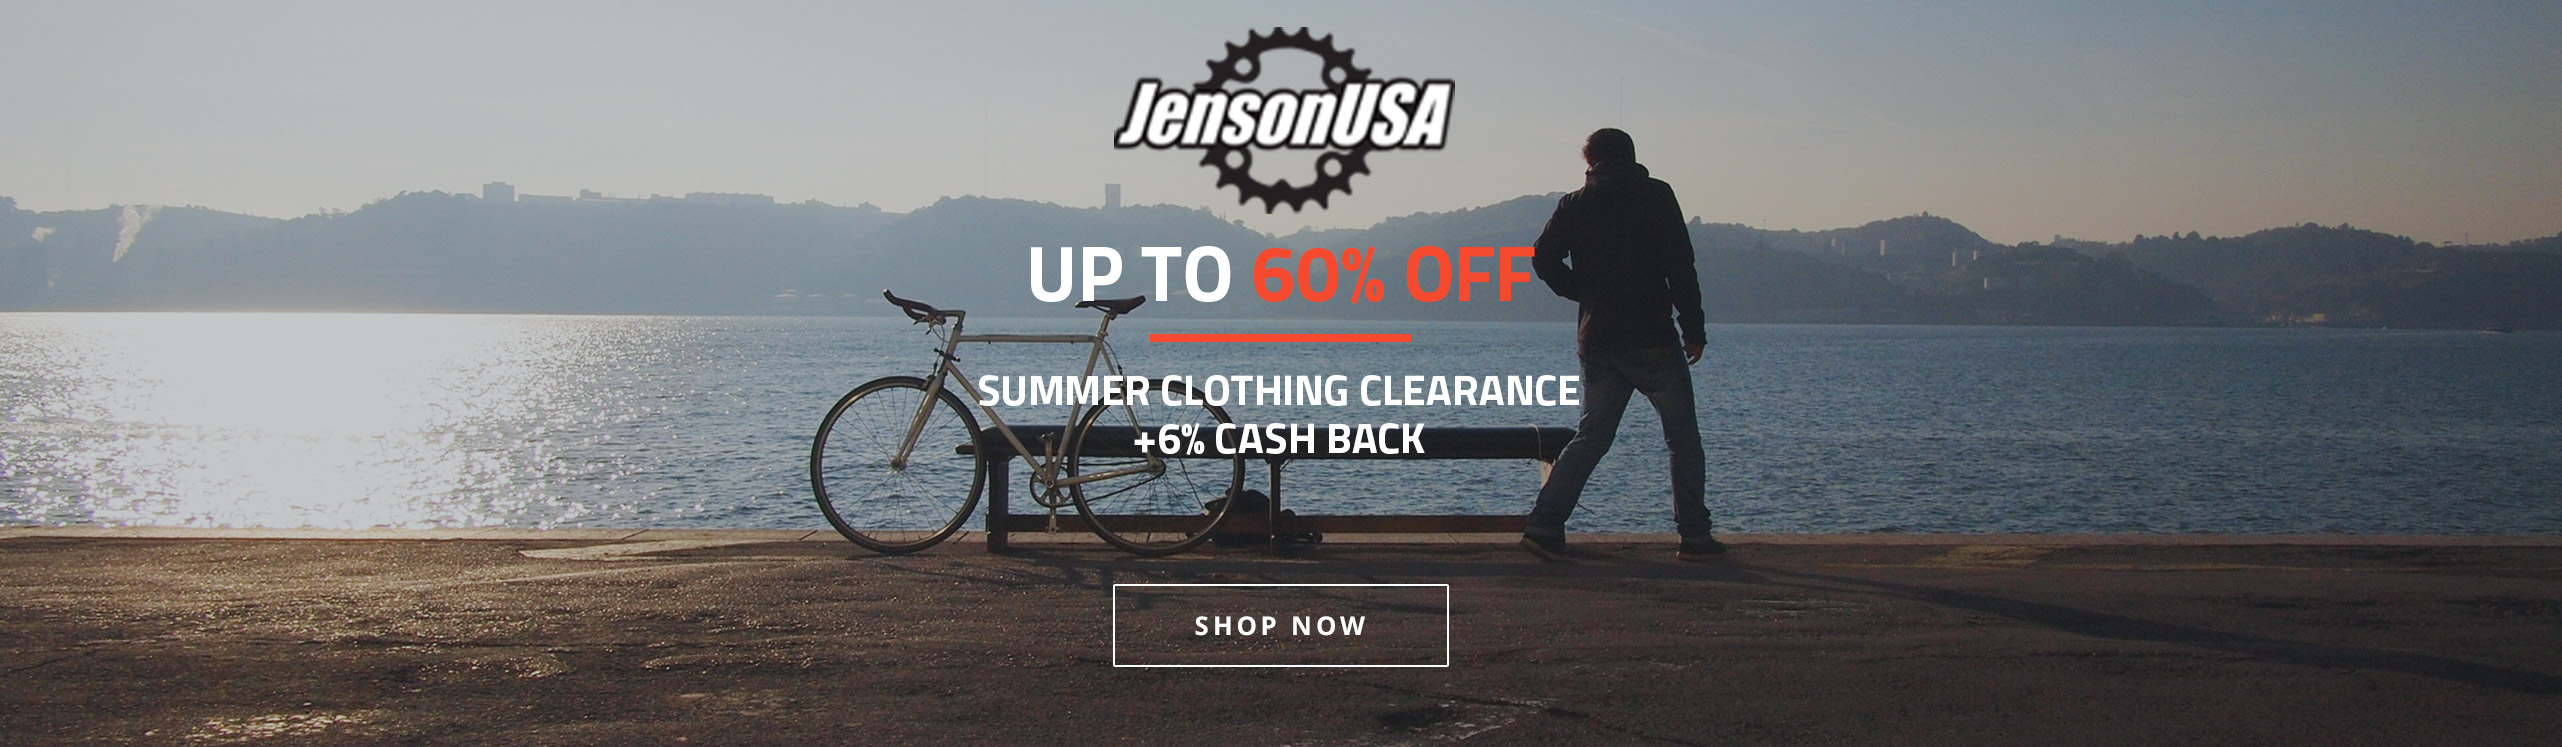 Jenson Summer CLothing Clearance Sale